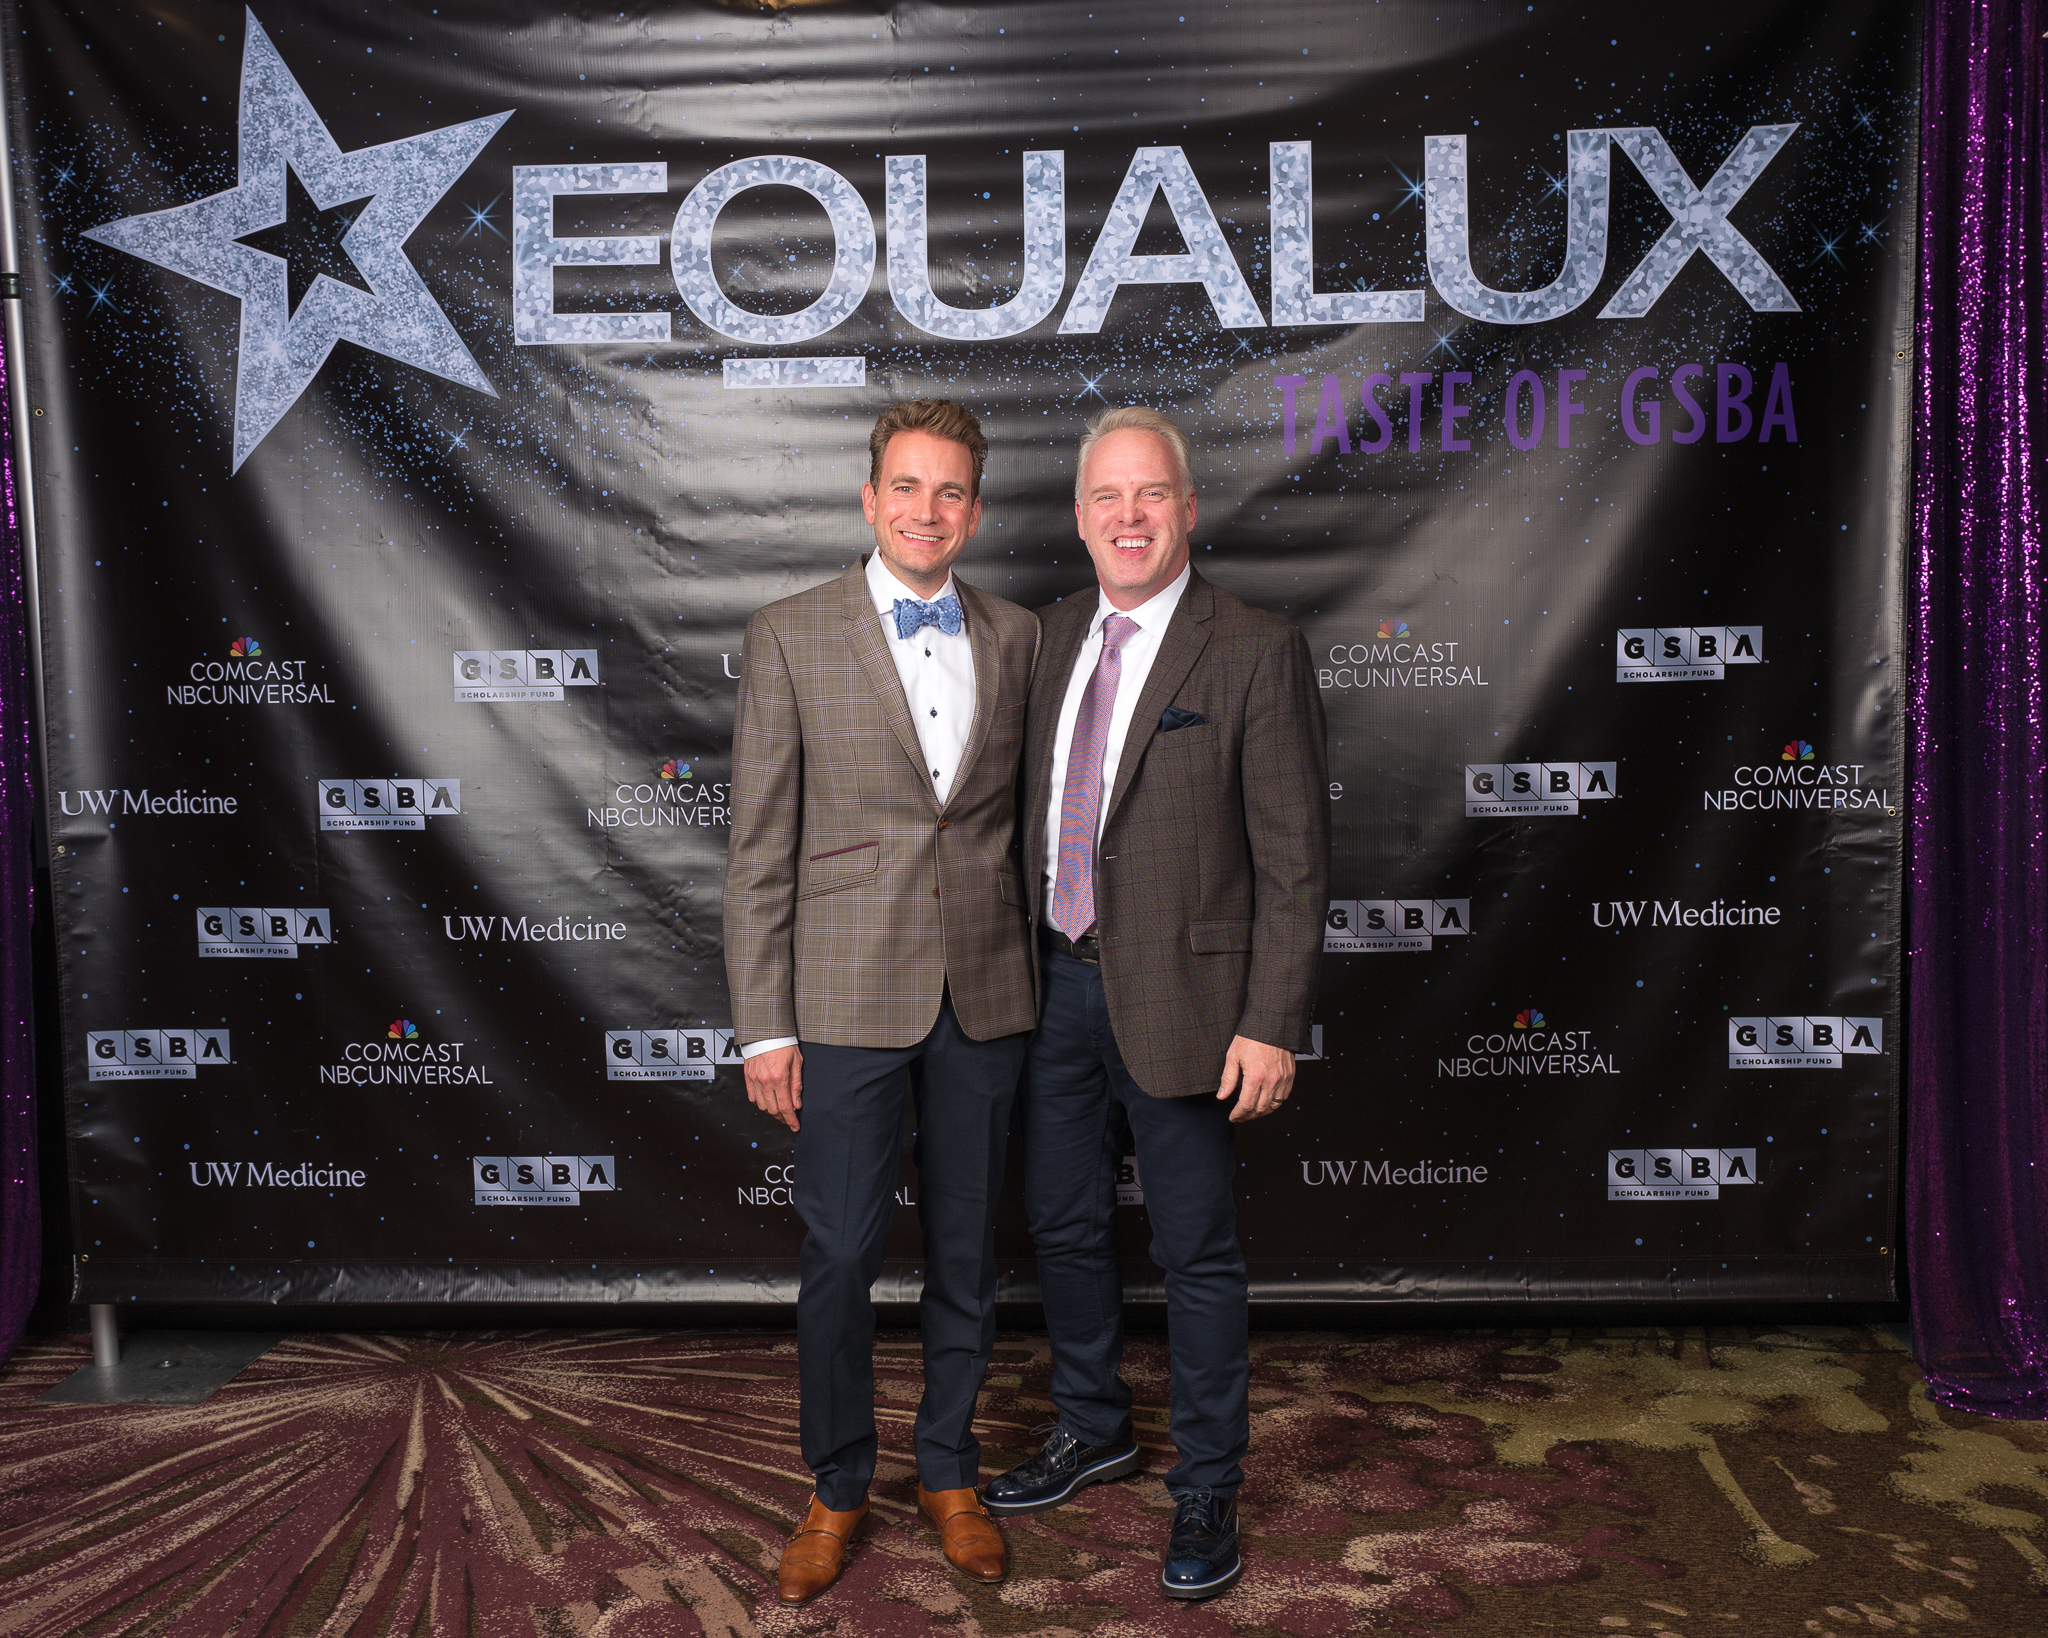 111718_GSBA EQUALUX at The Westin Seattle (Credit- Nate Gowdy)-118.jpg